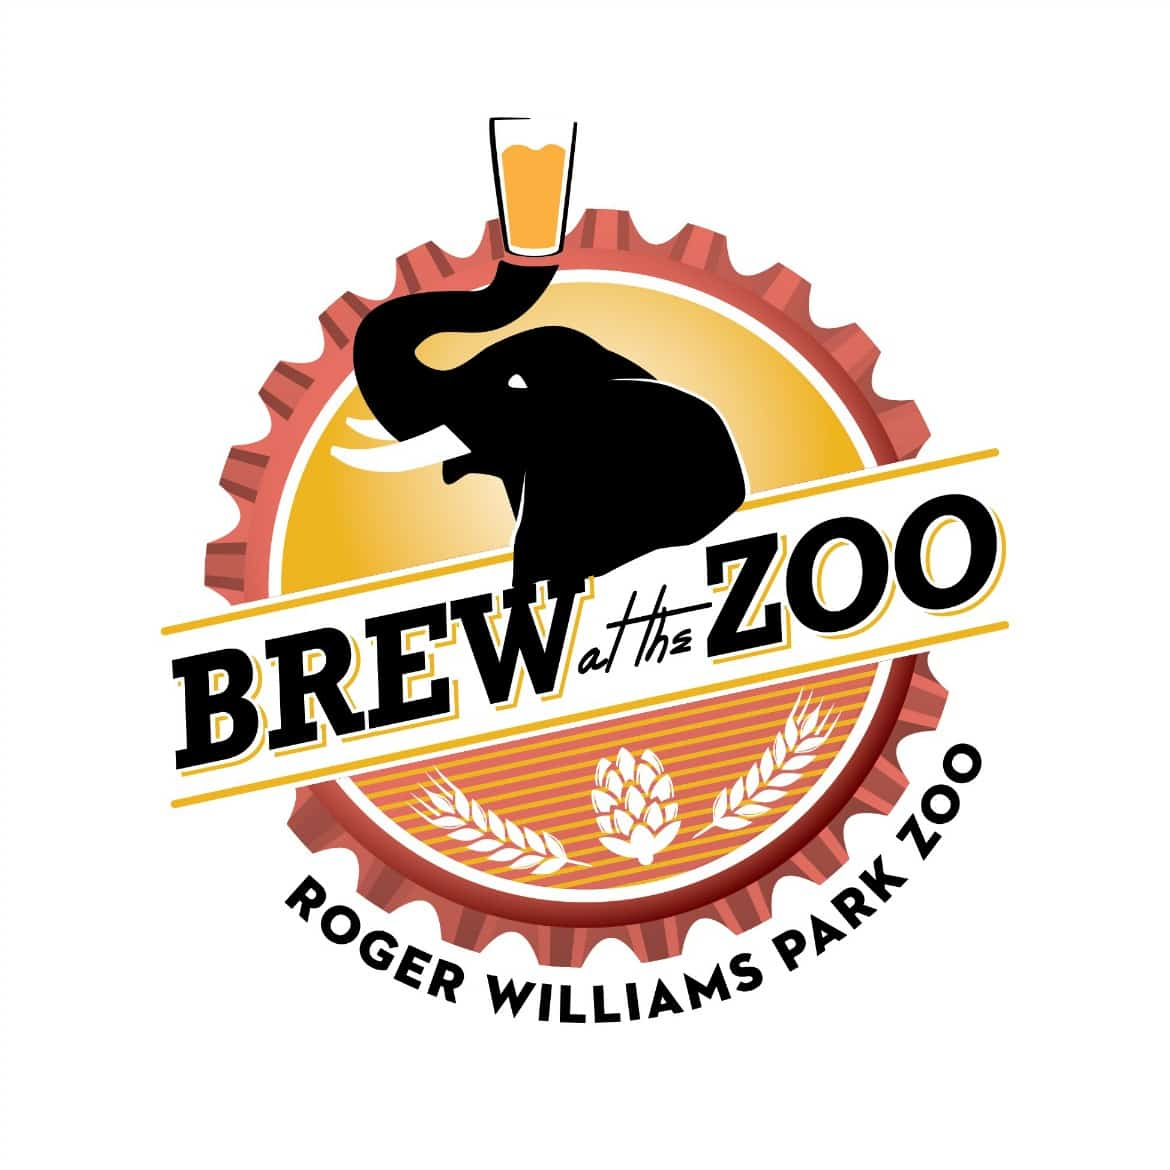 Roger williams zoo logo clipart image transparent BREW AT THE ZOO — LineSider Brewing Co. image transparent